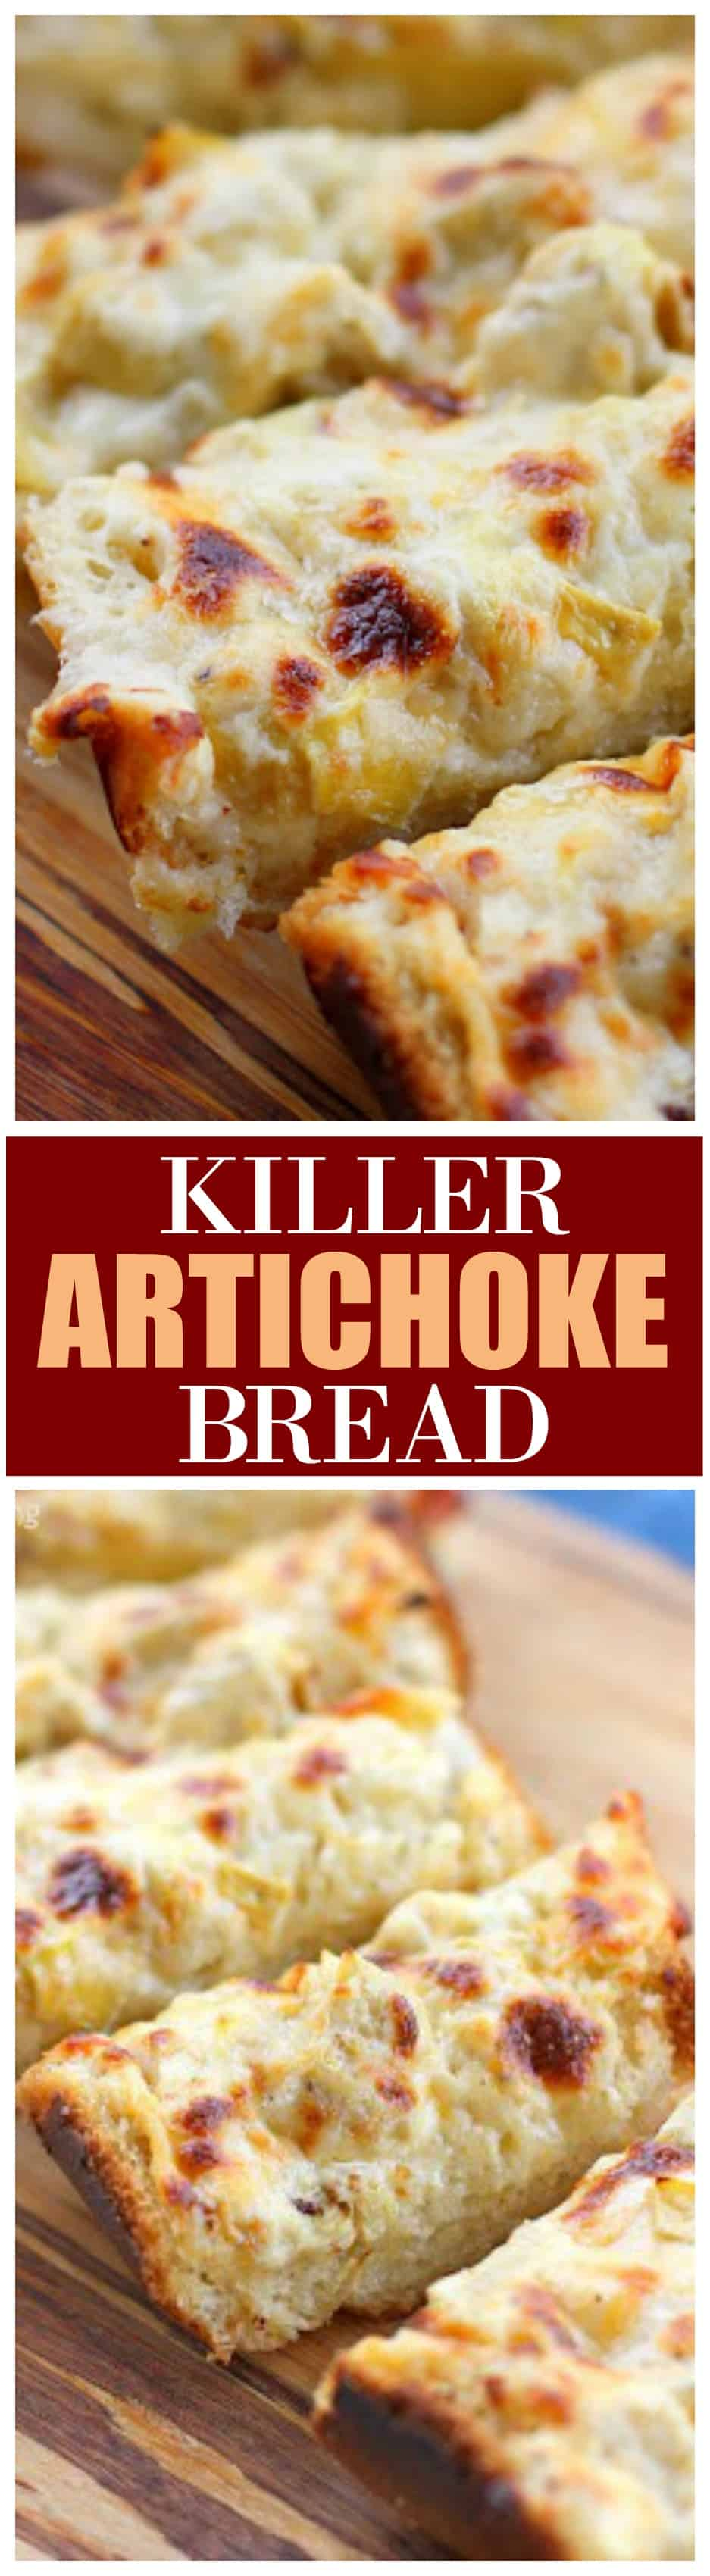 This Killer Artichoke Bread is artichoke dip in bread form. #killer #artichoke #bread #appetizer #recipe